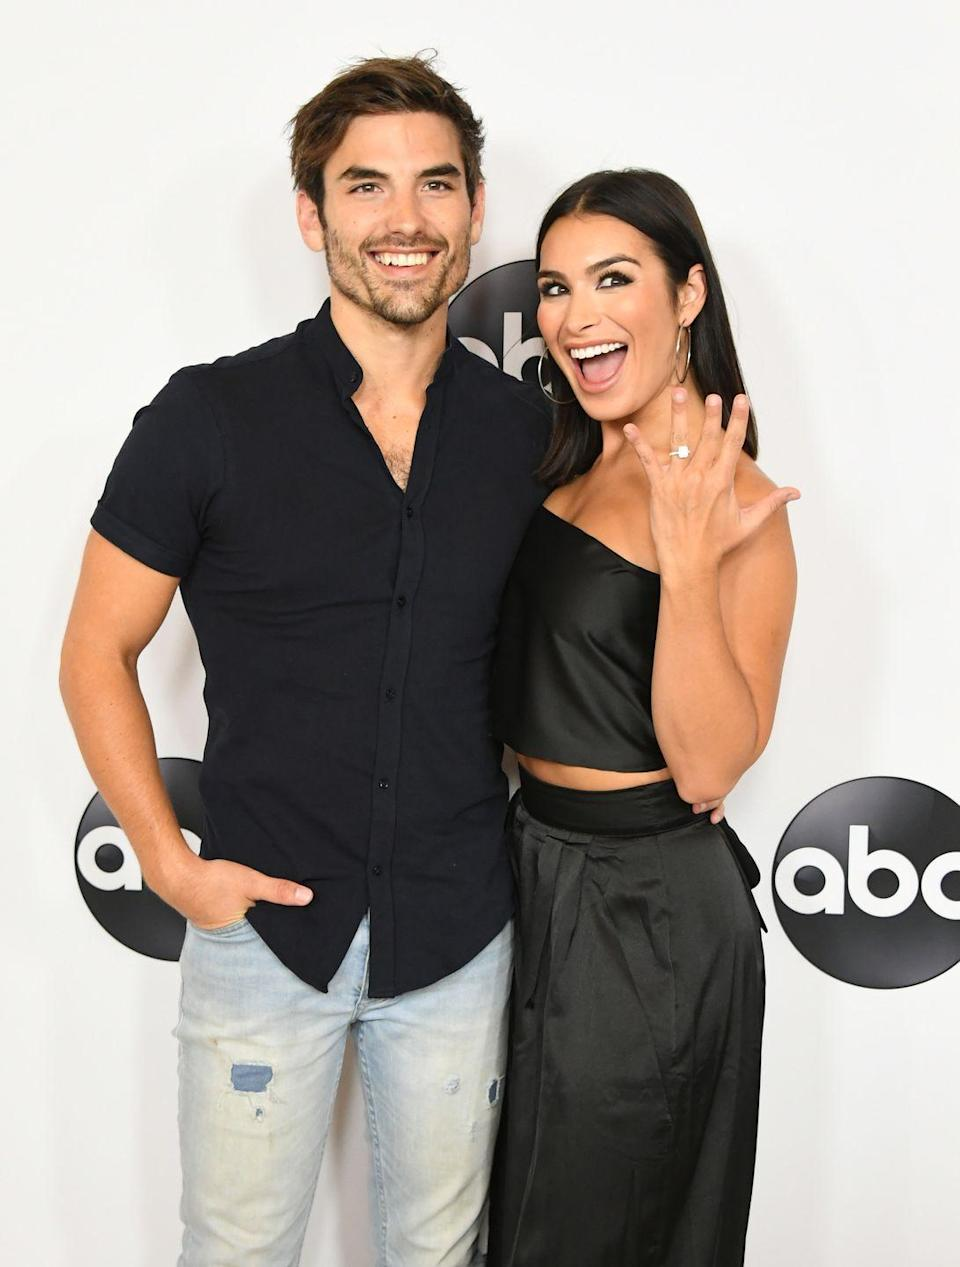 <p>To bring it full circle, Jared proposed to Ashley on season 5 of <em>BiP</em> on the beach where they first met. The couple made it official and got married in Rhode Island on August 11, 2019, and they're still living happily ever after. Who could have predicted this?! </p>